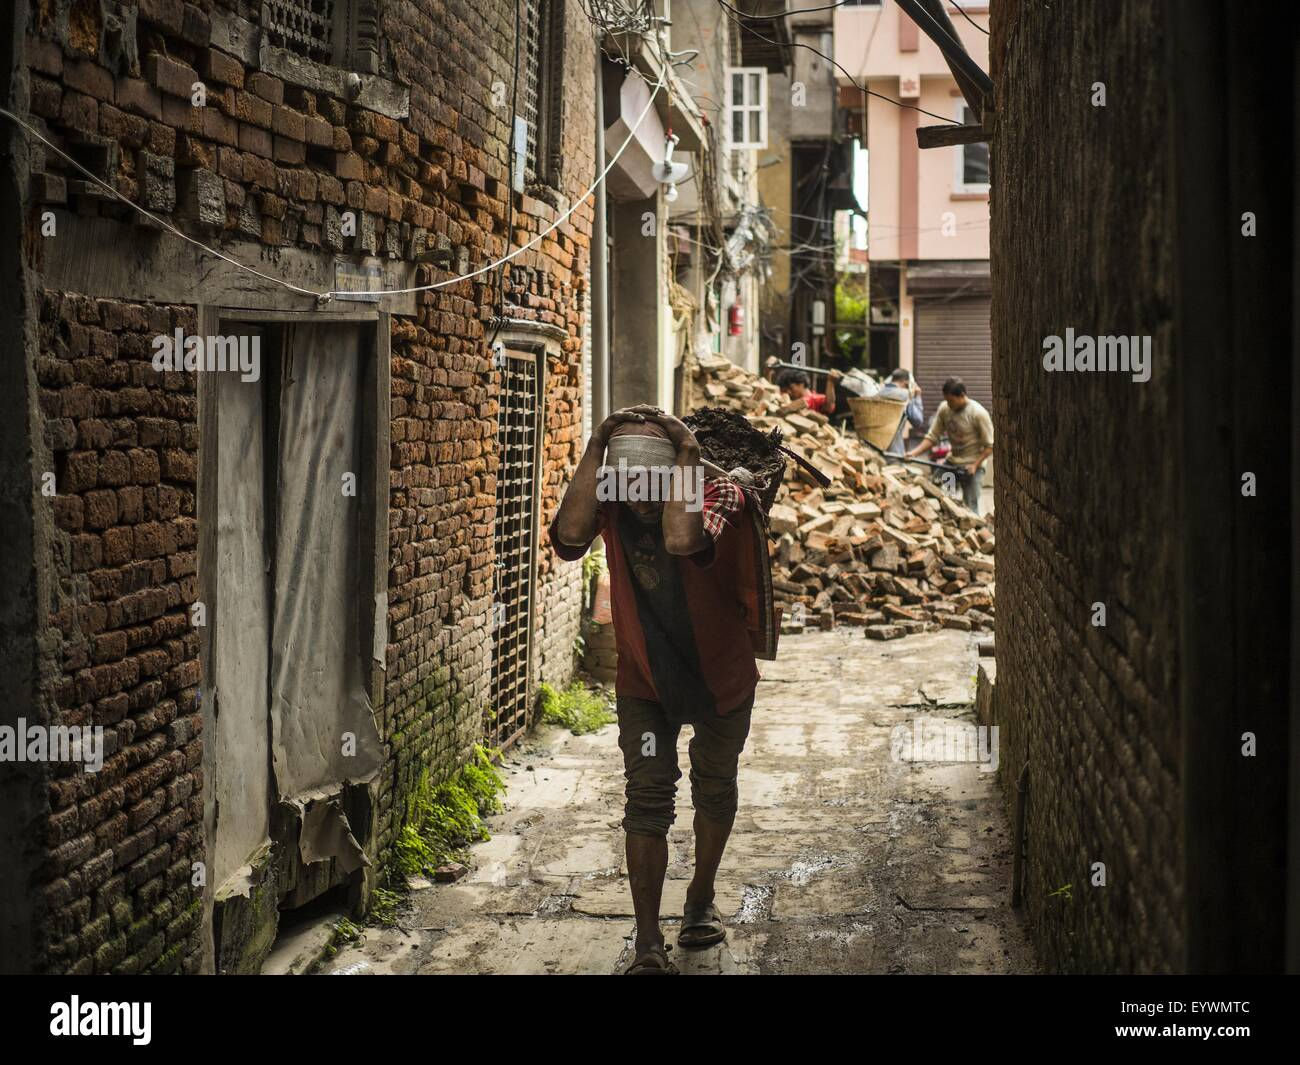 Kathmandu, Nepal. 1st Aug, 2015. A worker in Kathmandu carries bricks out of a home destroyed by the earthquake. - Stock Image